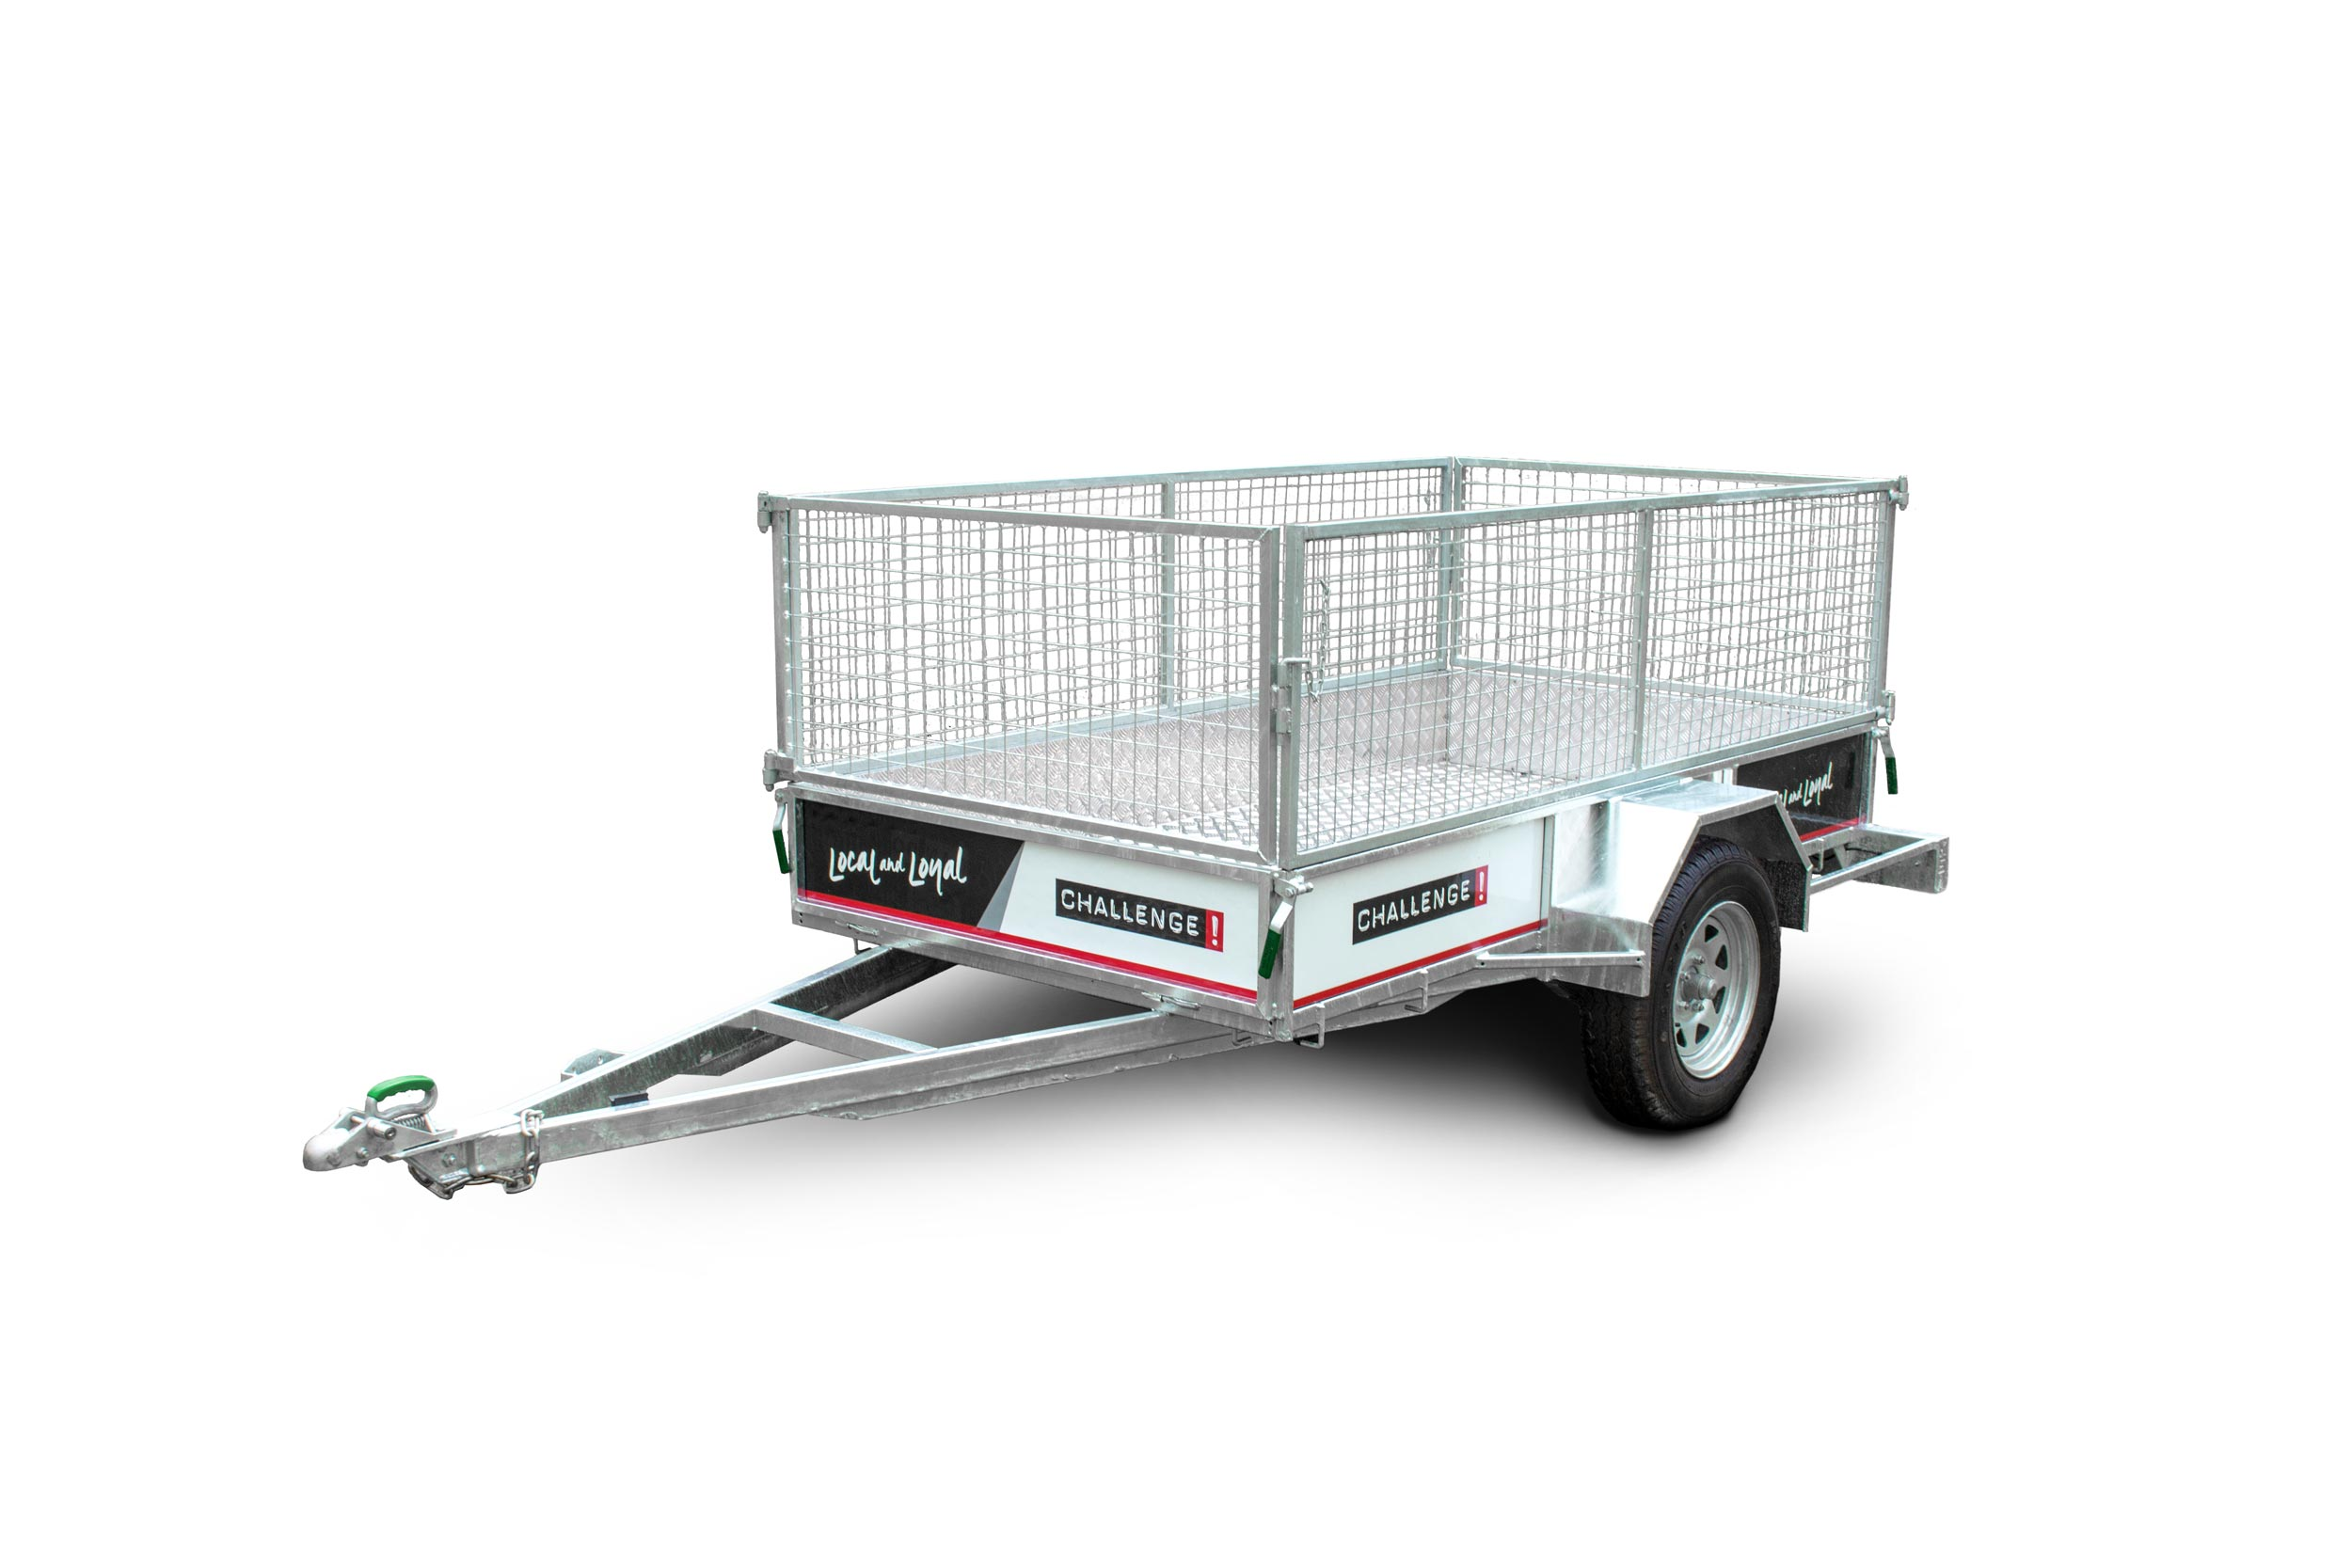 Mike Deane Motors - Omokoroa Automotive Specialists - Caged Trailer Hire